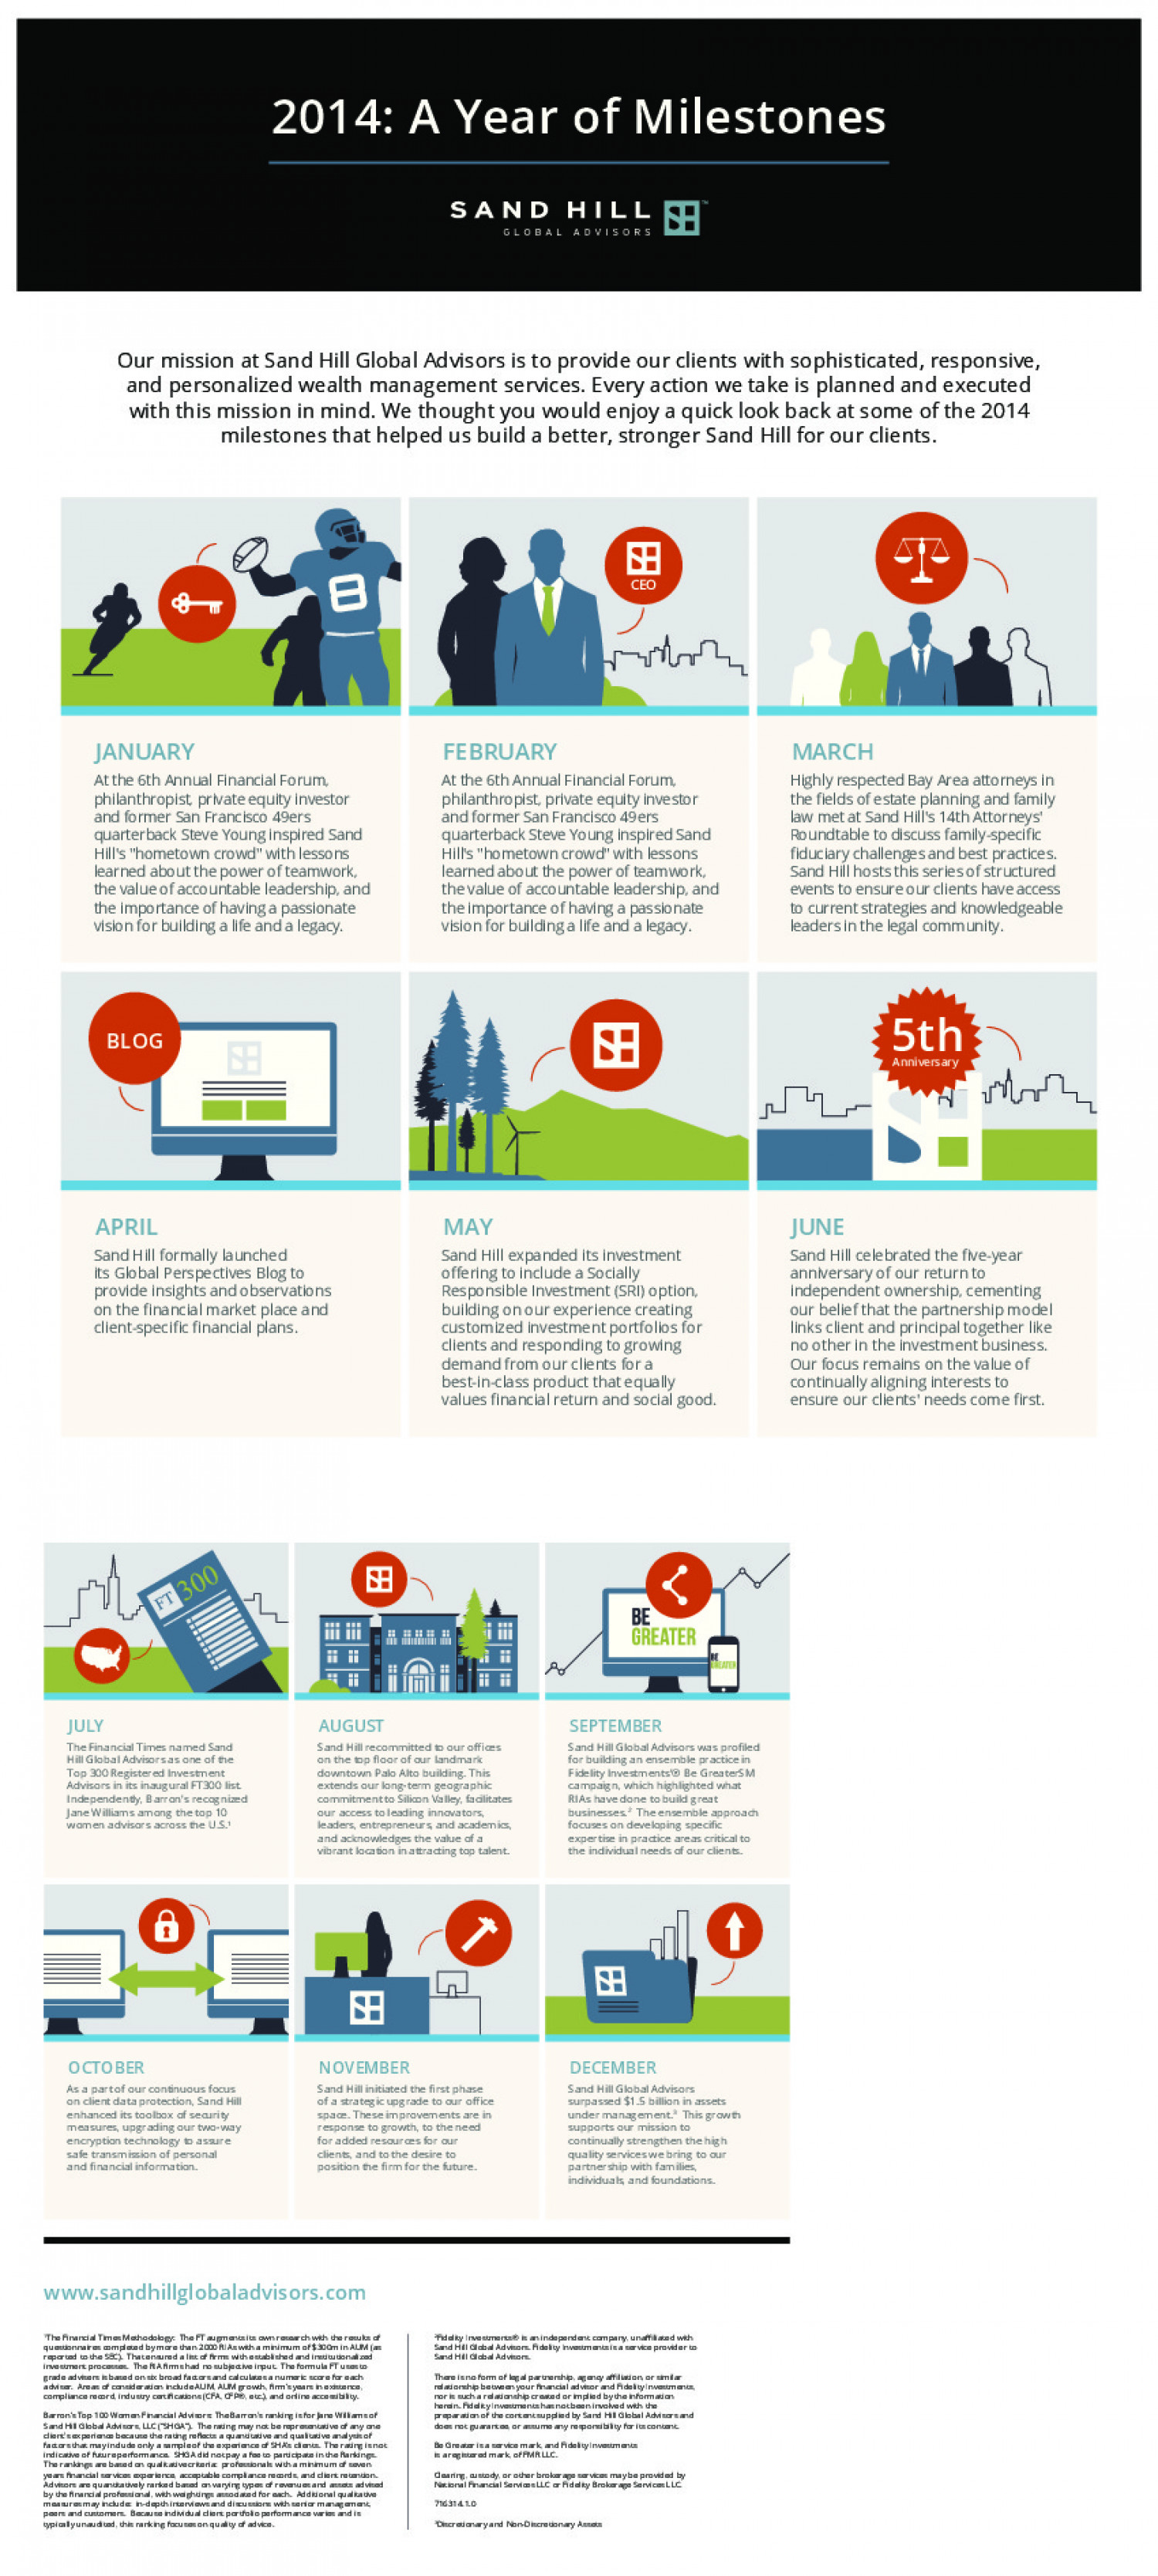 2014: A Year of Milestones Infographic